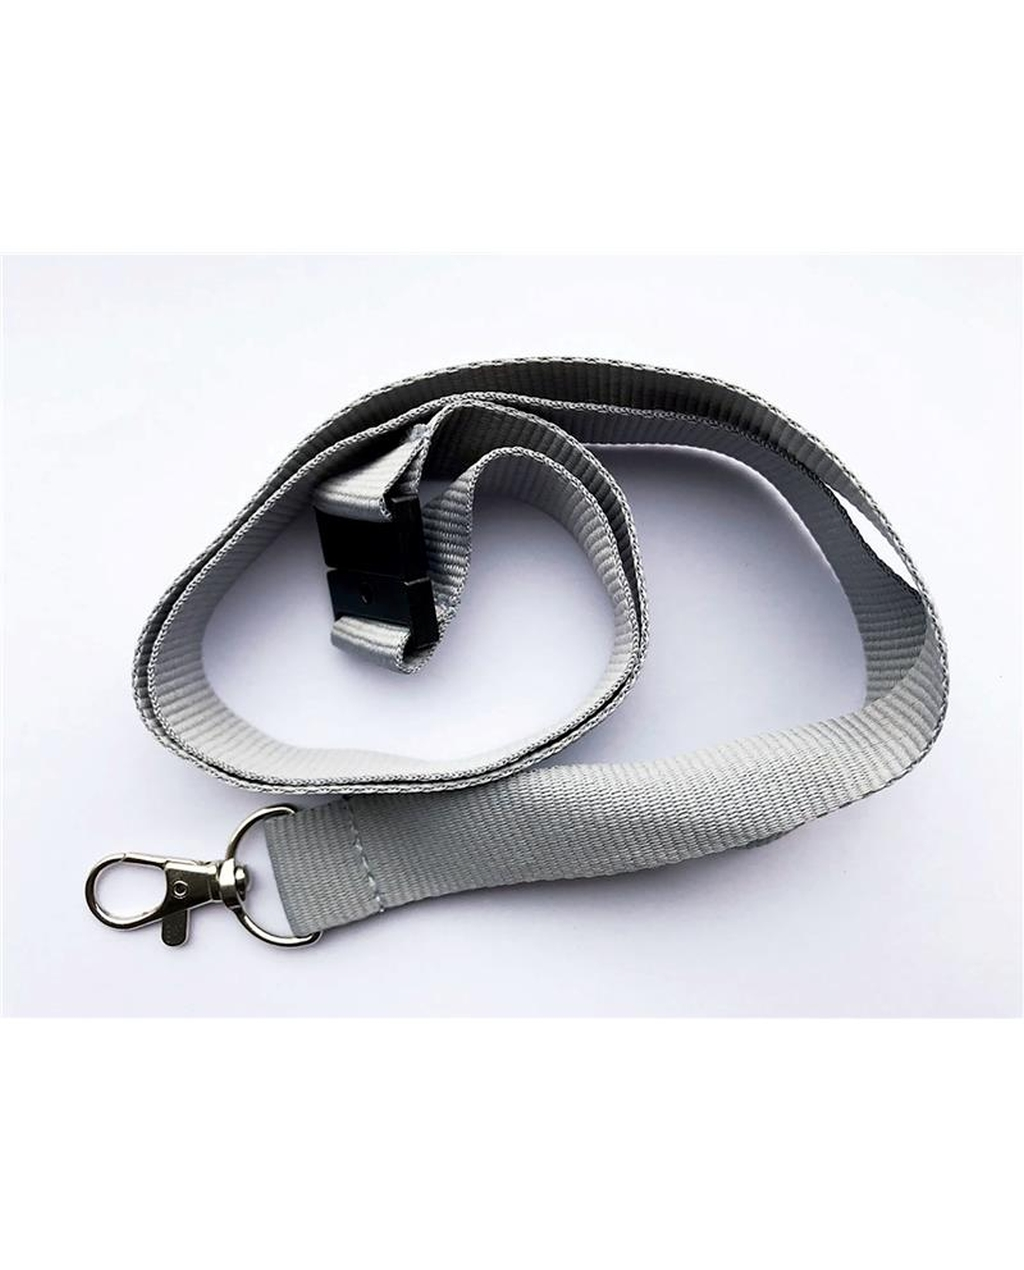 20Mm Lanyards Plain Greypack Of 25